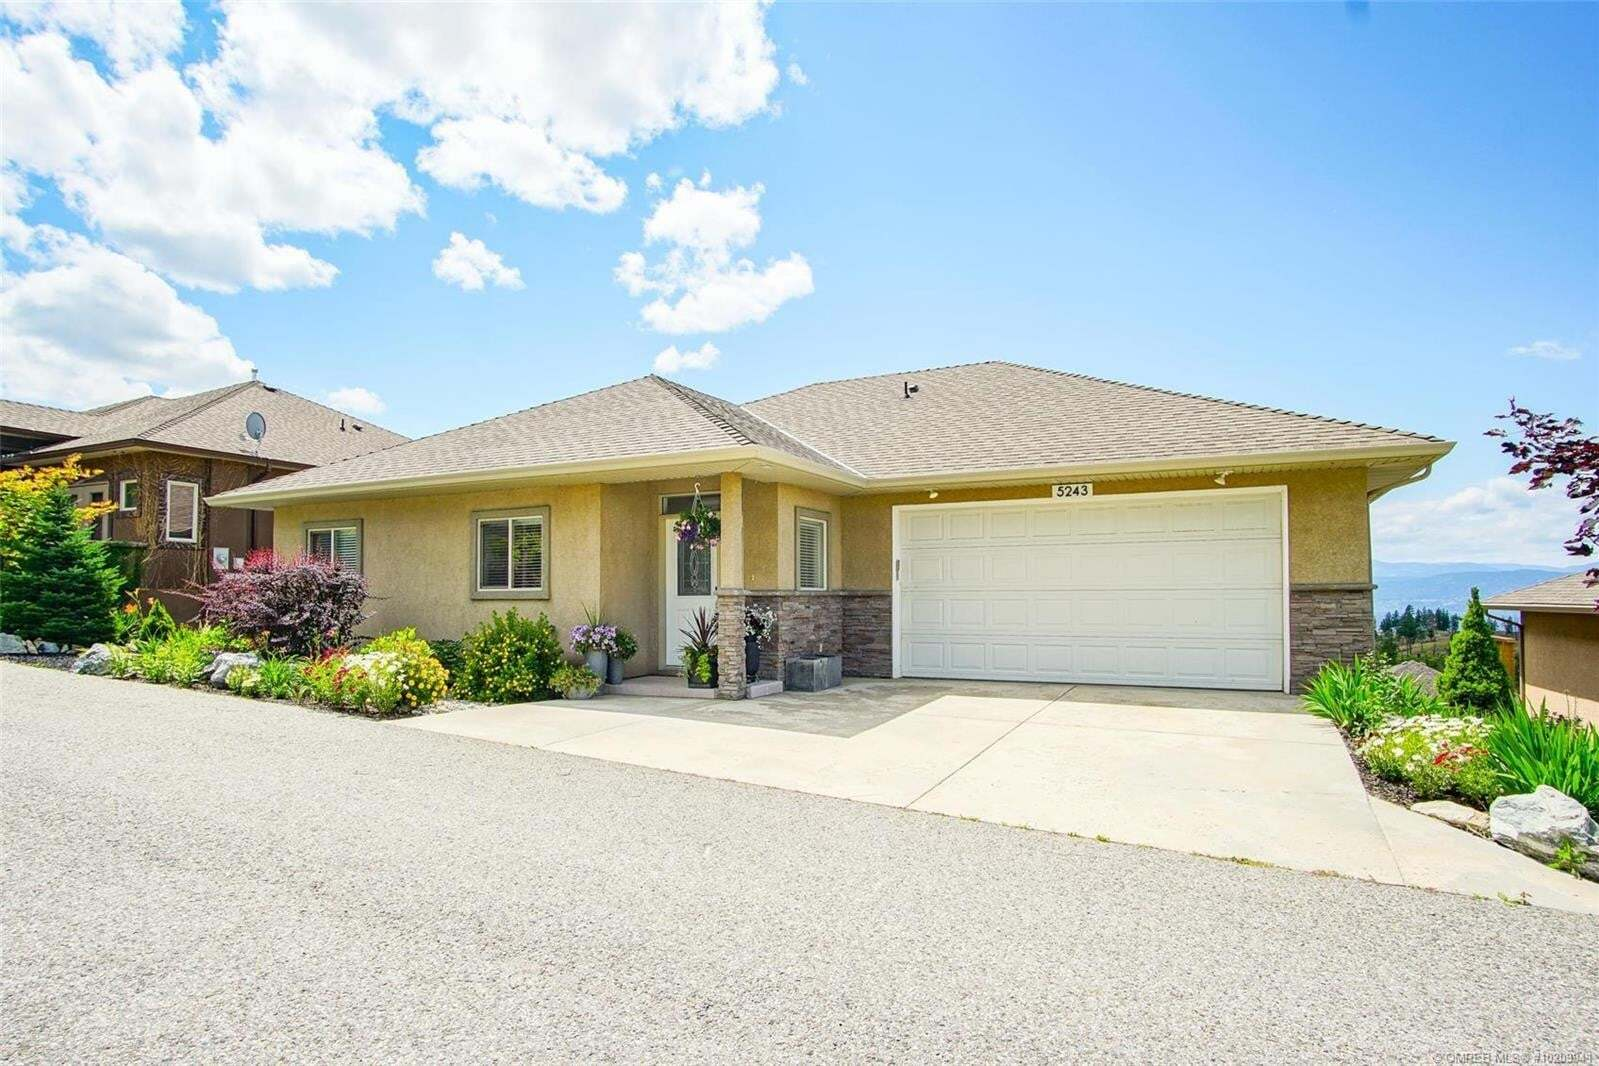 House for sale at 5243 Burnell Ct Kelowna British Columbia - MLS: 10209941